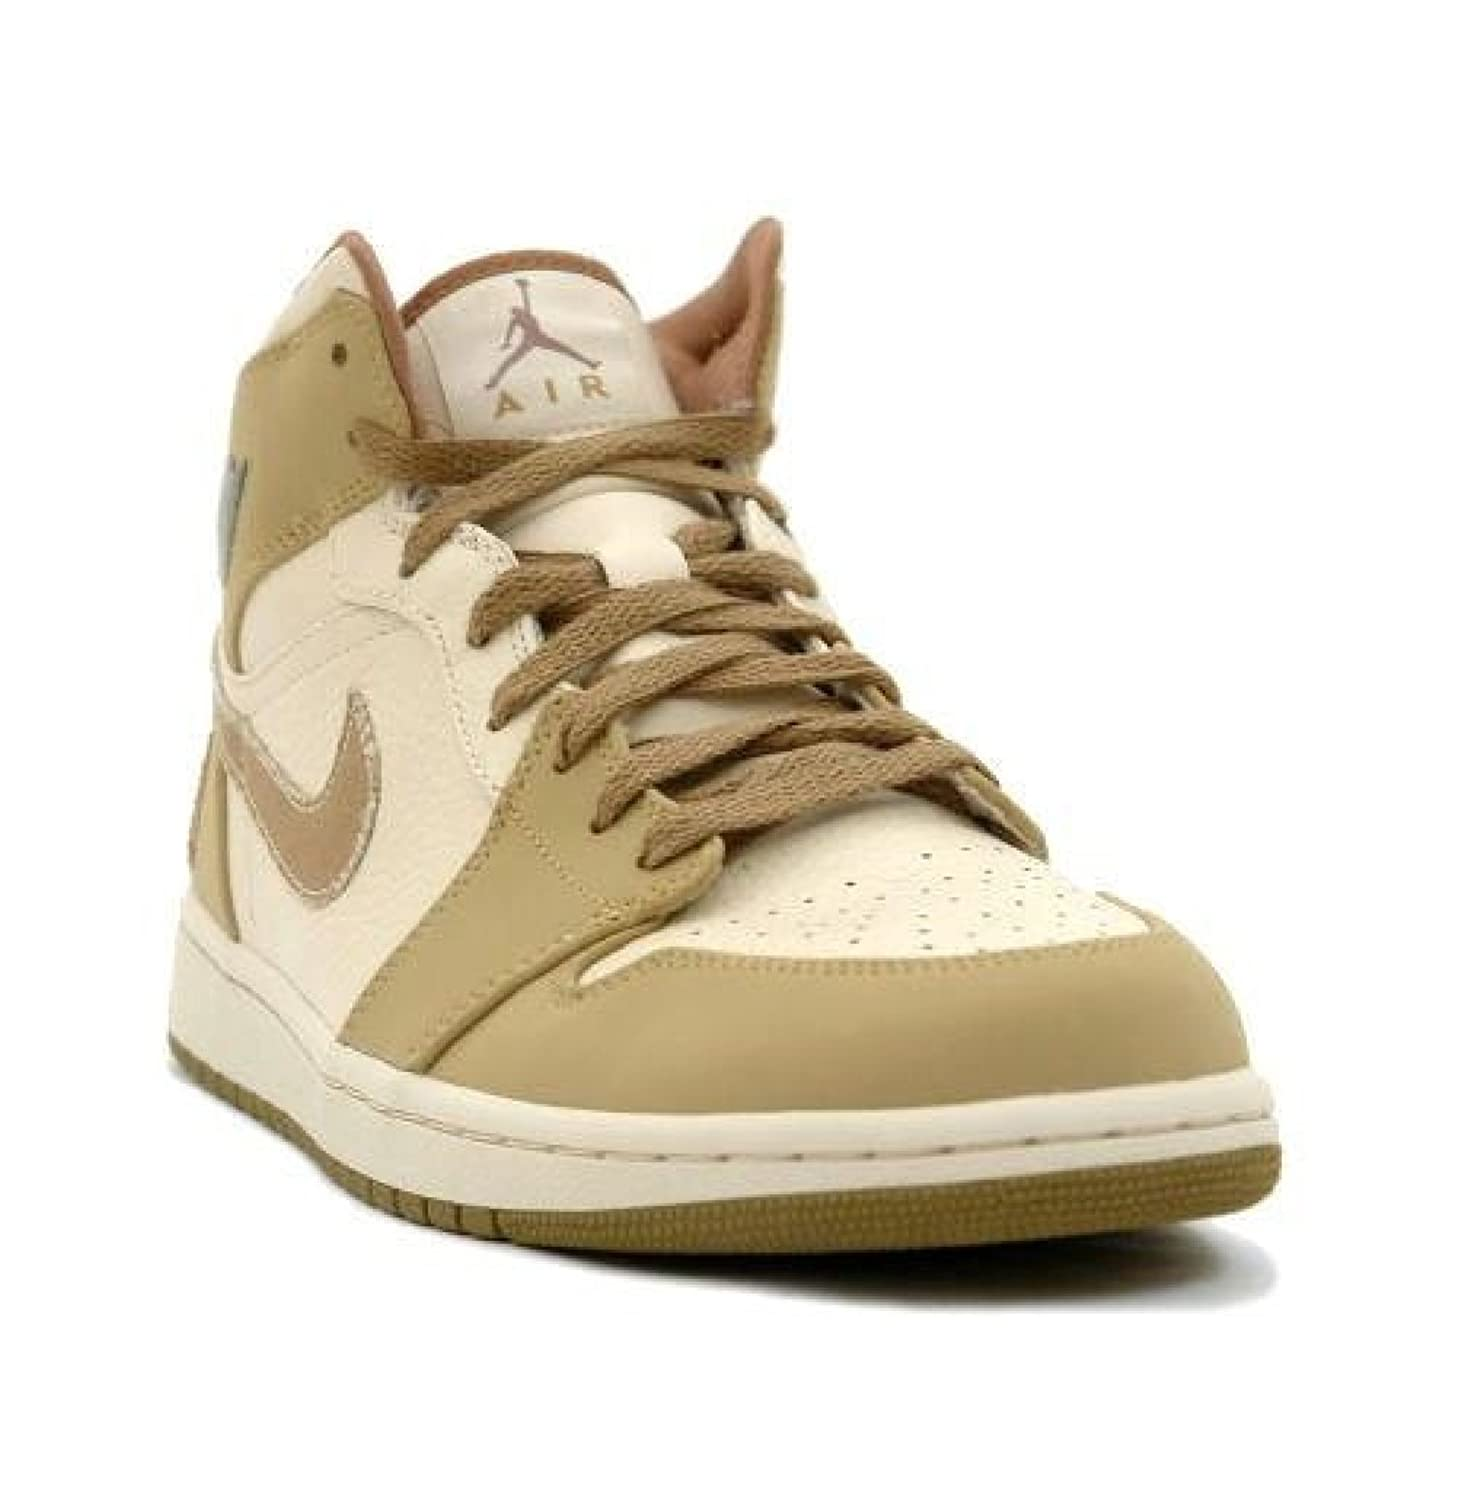 online retailer 57072 5695c Amazon.com  NIKE Air Jordan 1 Retro Army Package Pearl White Walnut Limited  Edition Sneakers (9.5)  Shoes